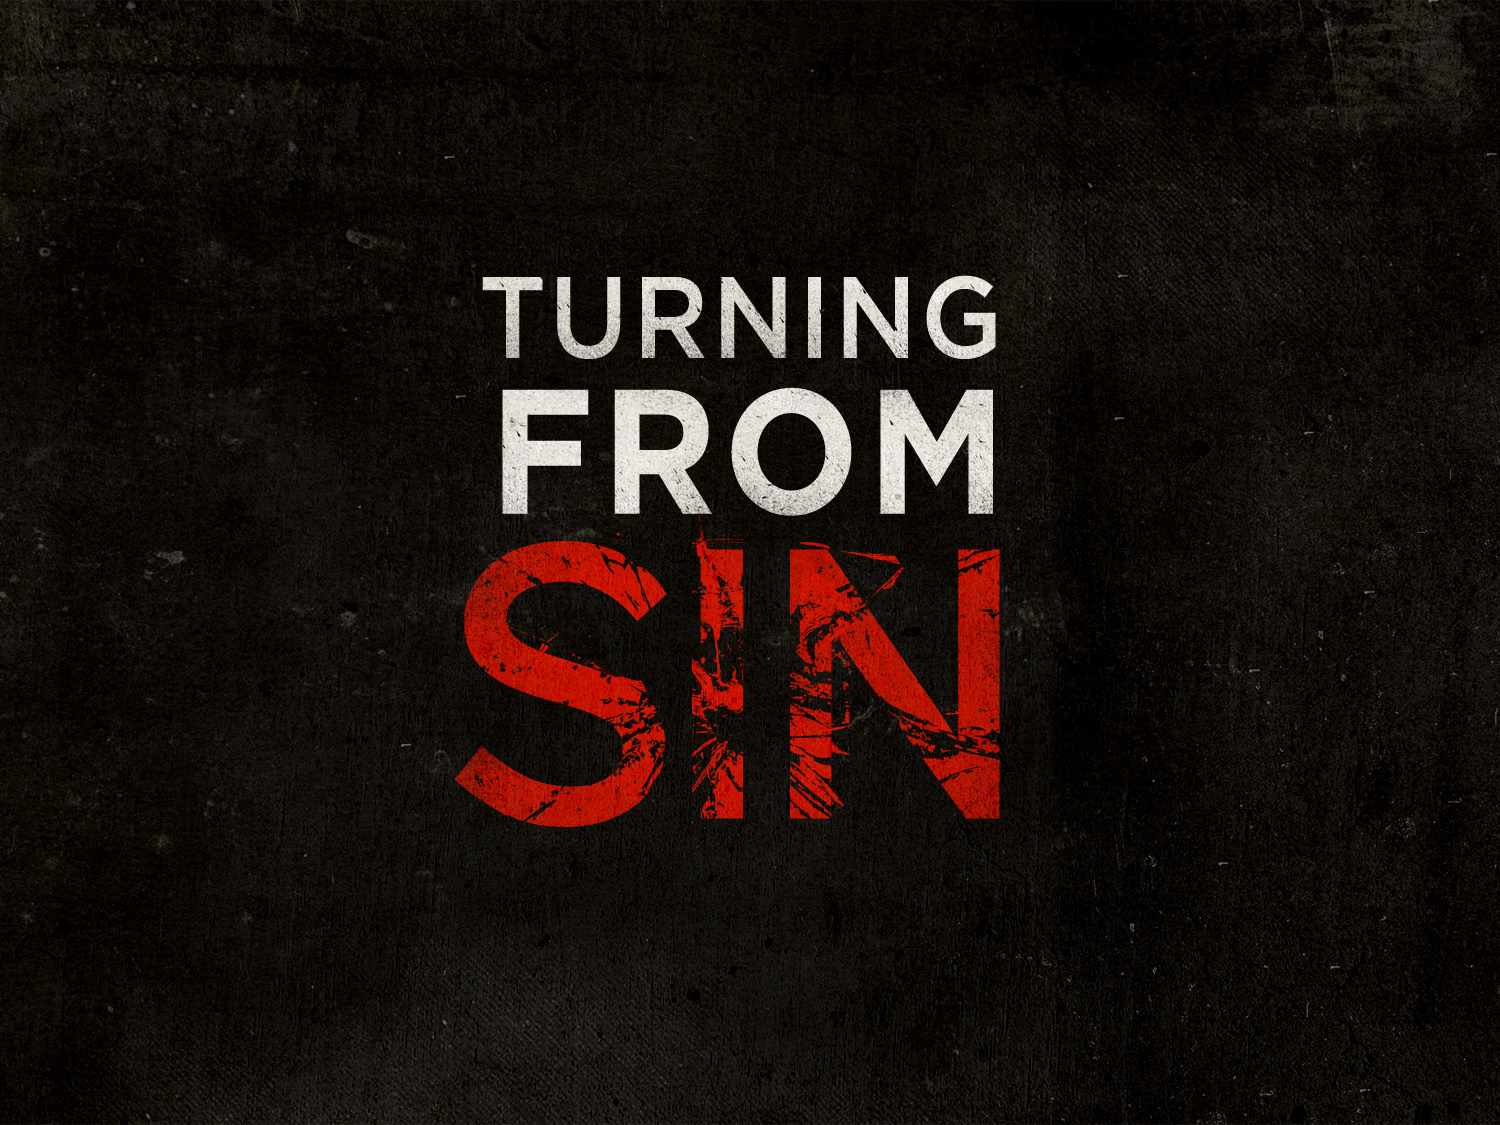 10 Points on How to Stop Sinning